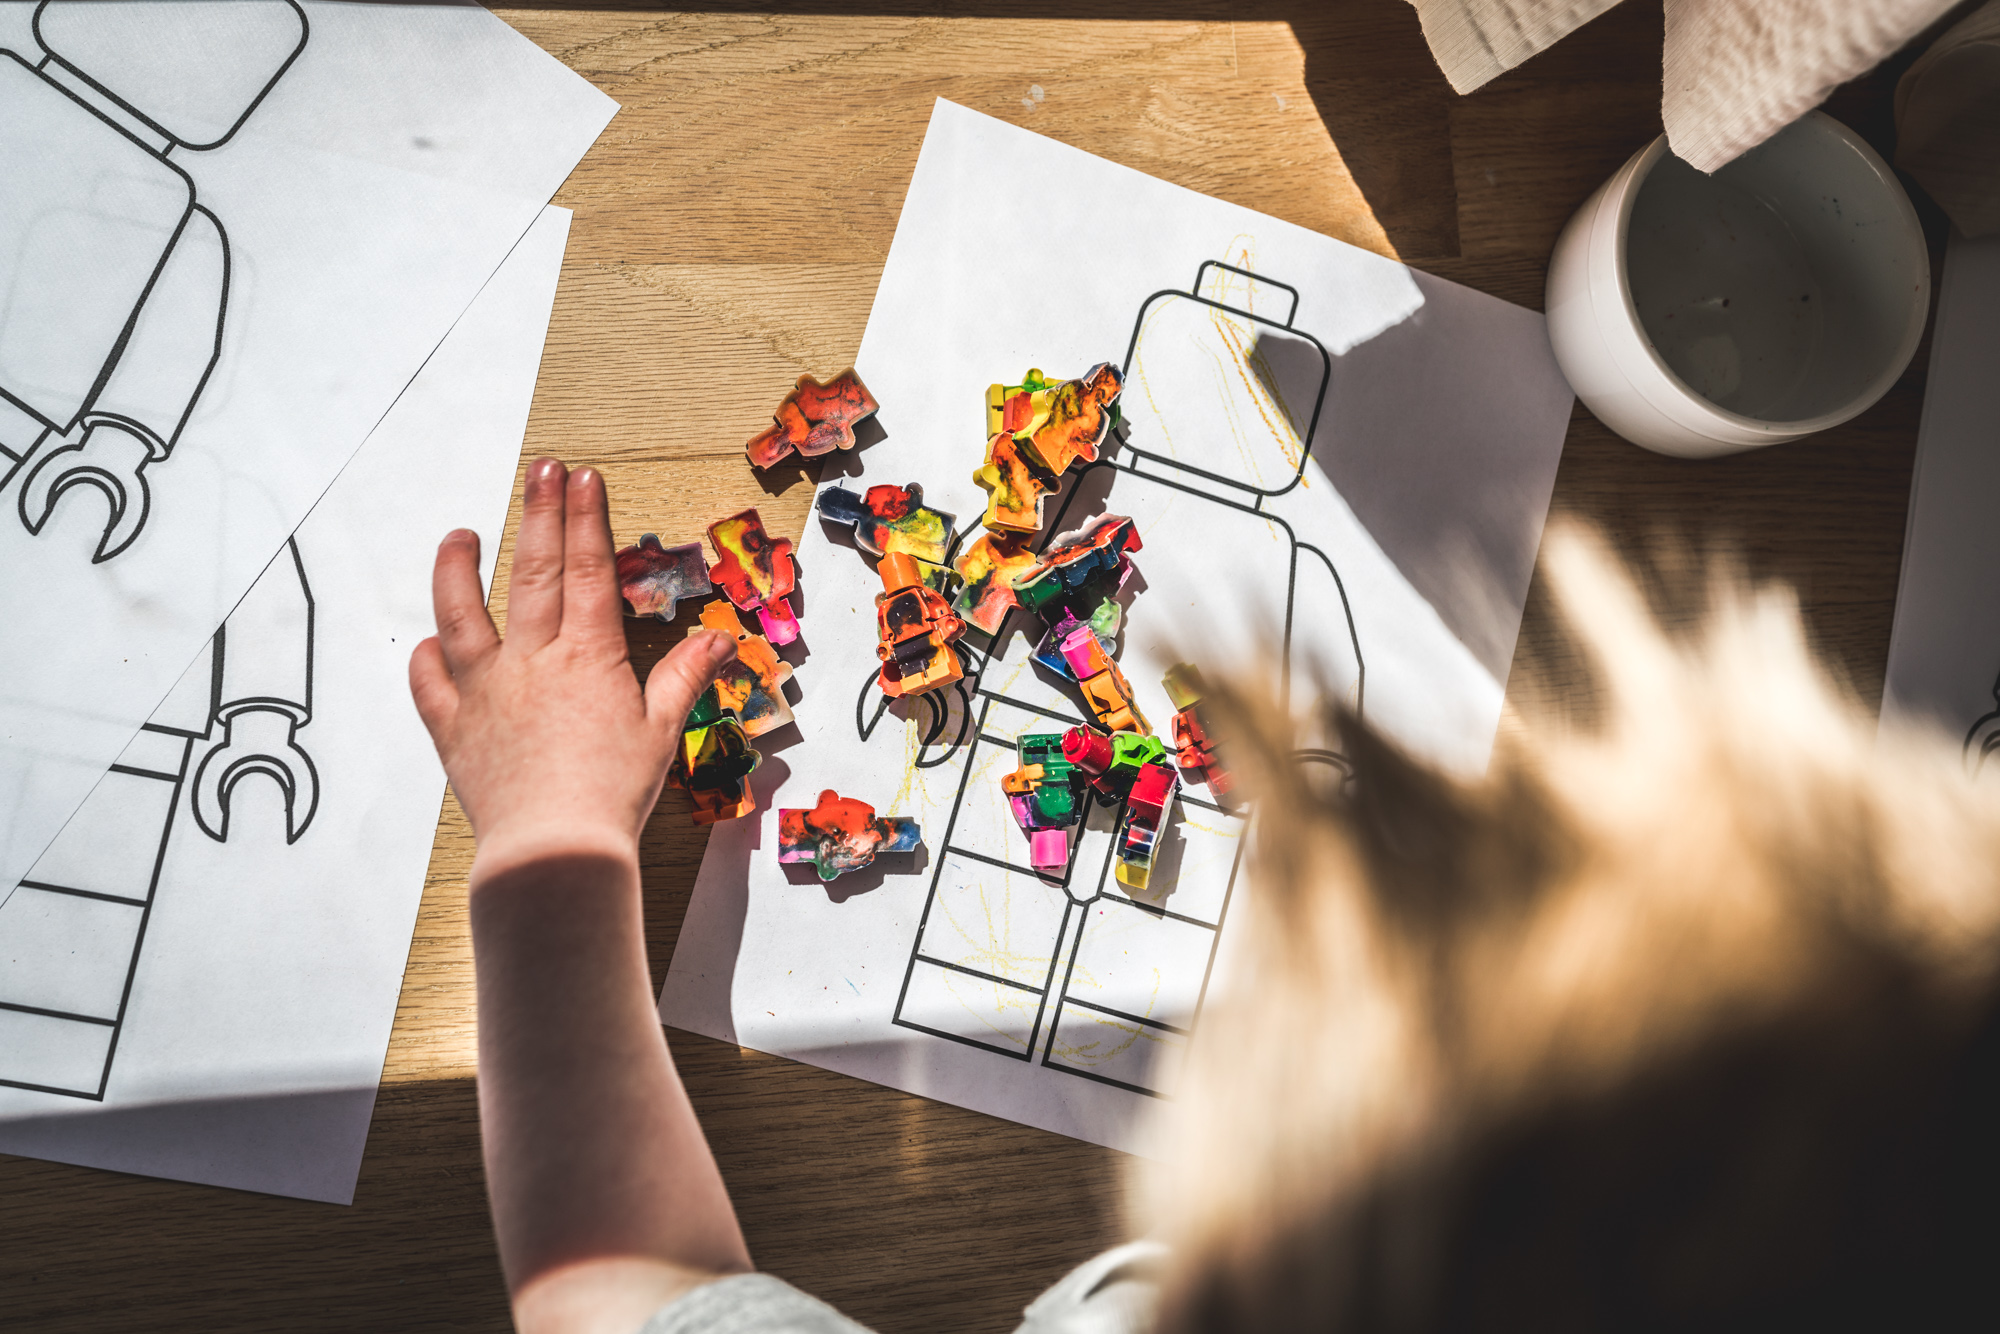 Color photo of a little boy playing with hand-made crayons shaped like lego men